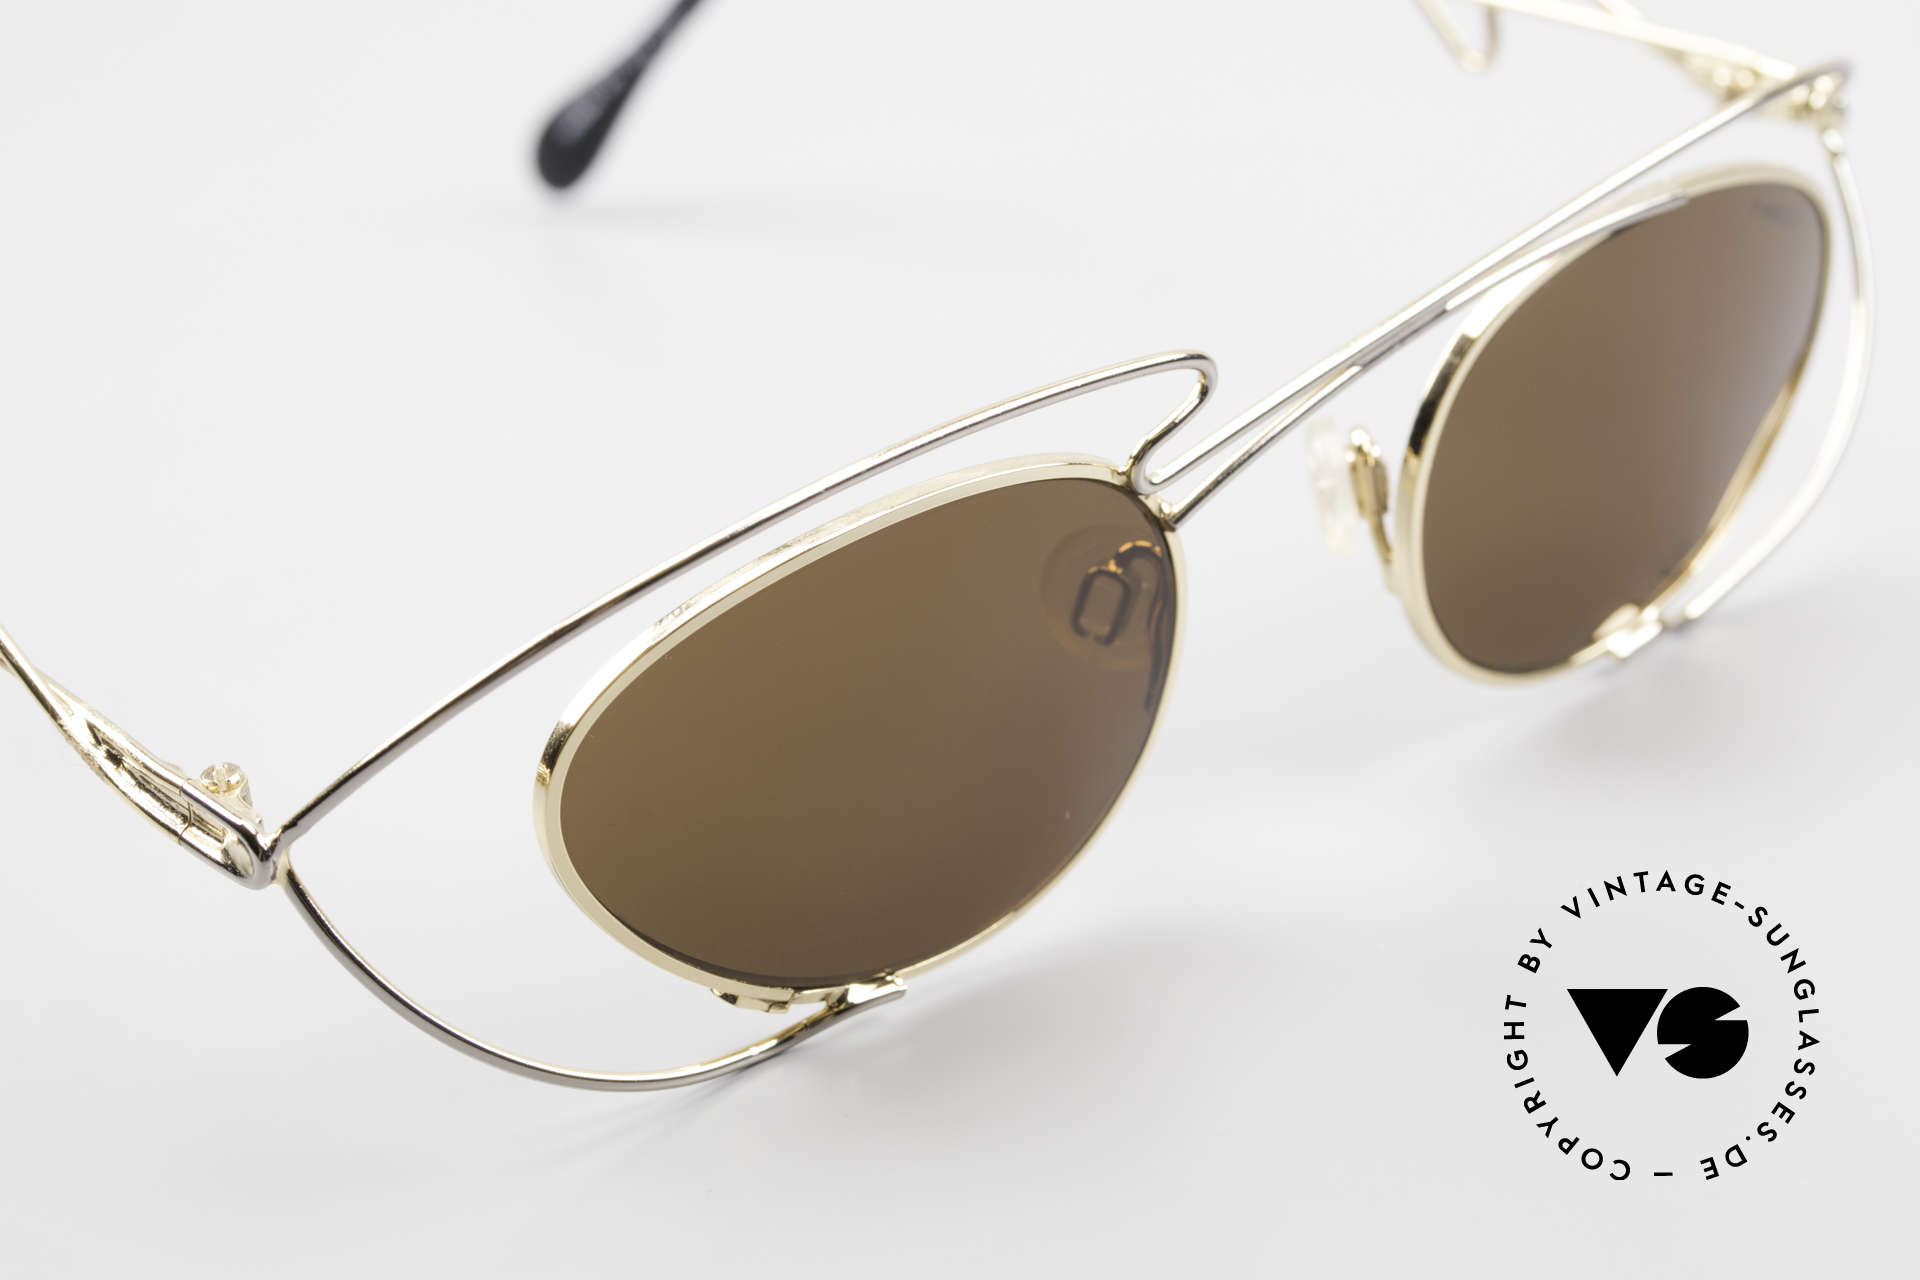 Neostyle Holiday 973 Crazy 90's Ladies Sunglasses, sun lenses could be replaced with prescriptions, Made for Women